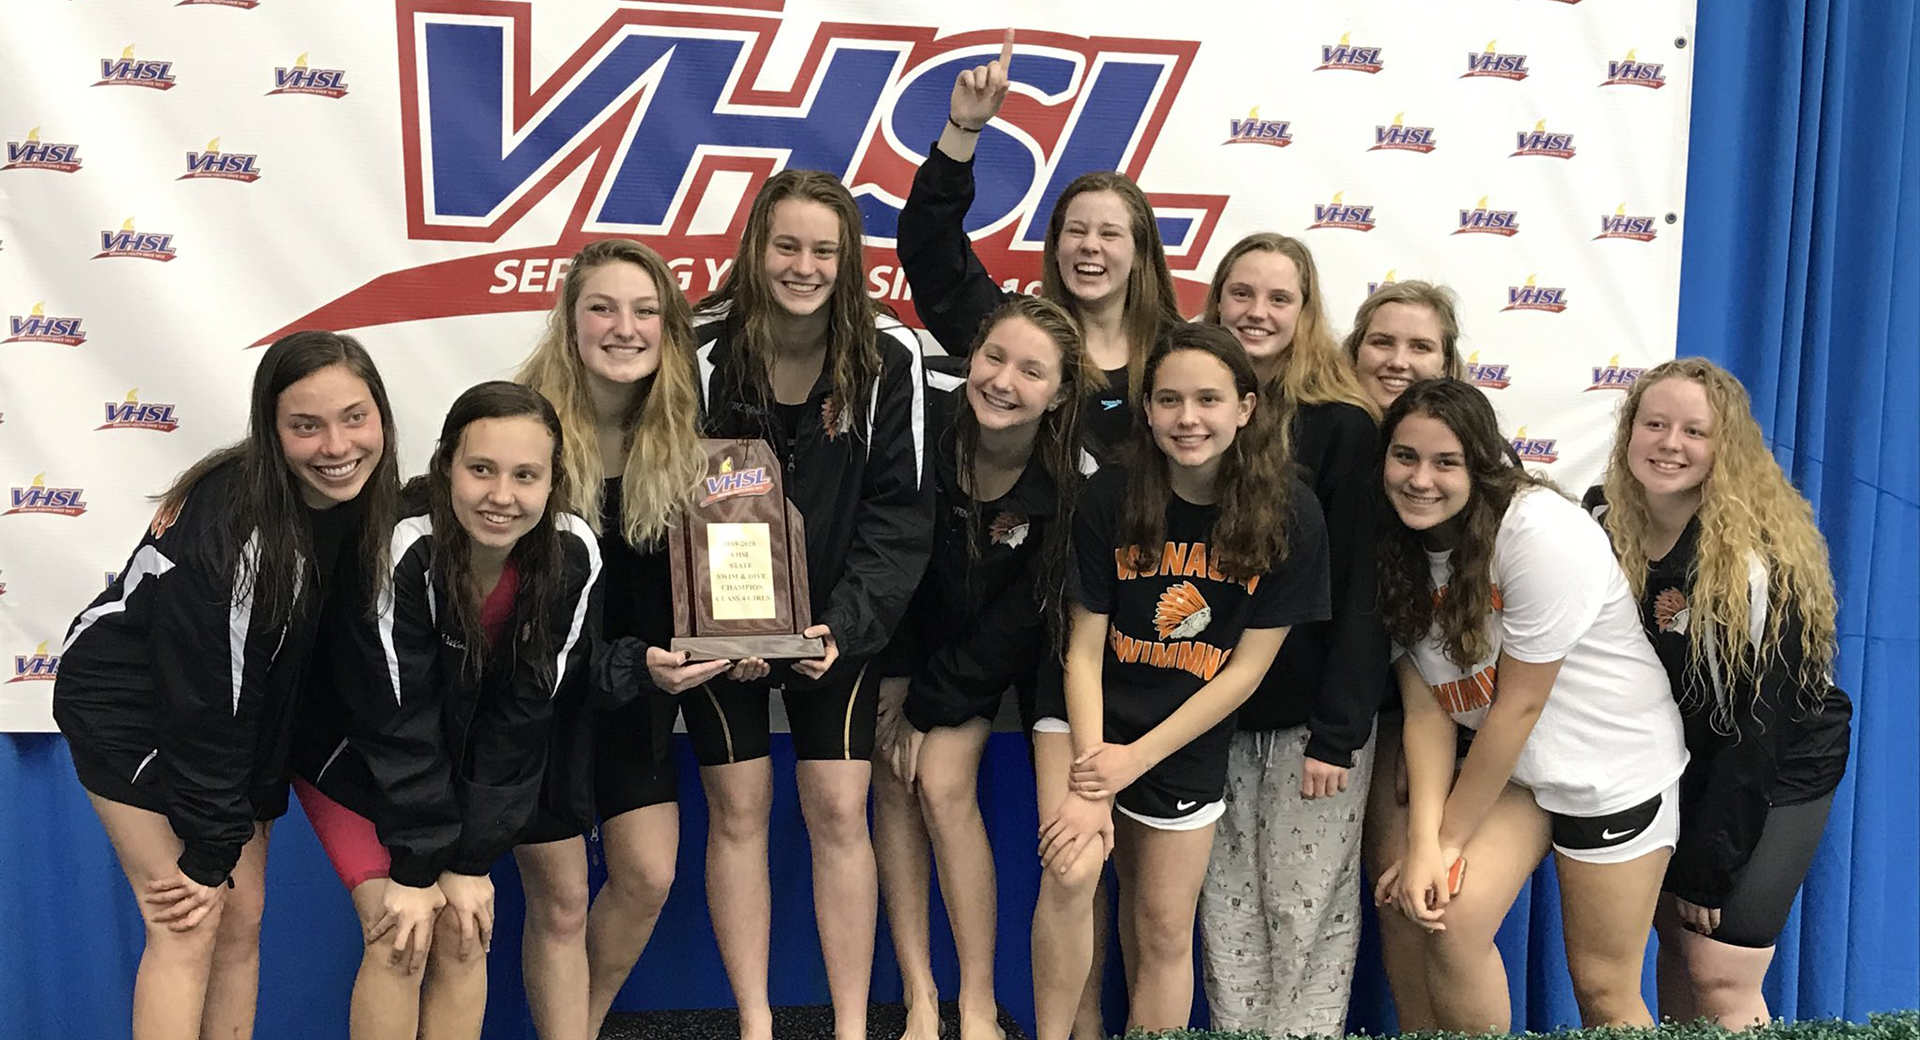 Swimteam on stand accepting award.